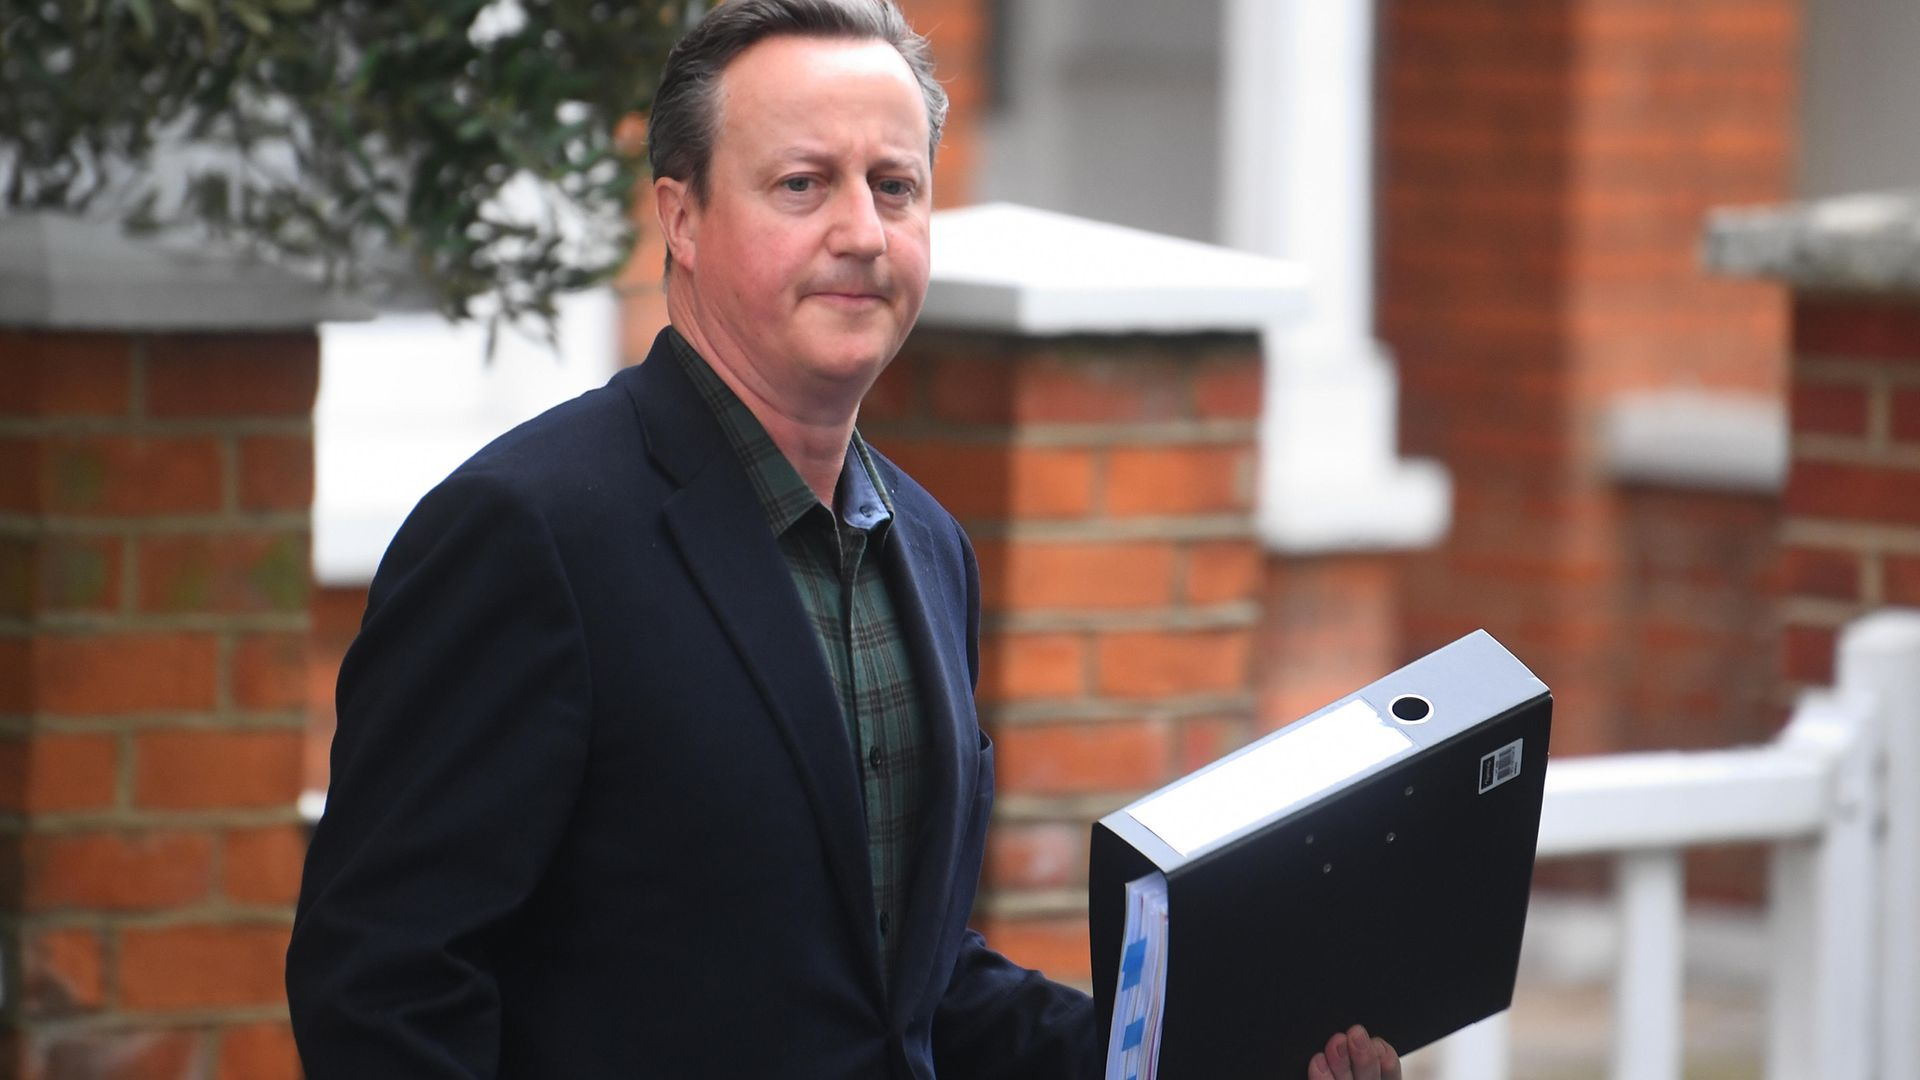 David Cameron leaves his home in London ahead of giving evidence to the Commons Treasury Committee on Greensill Capital - Credit: PA